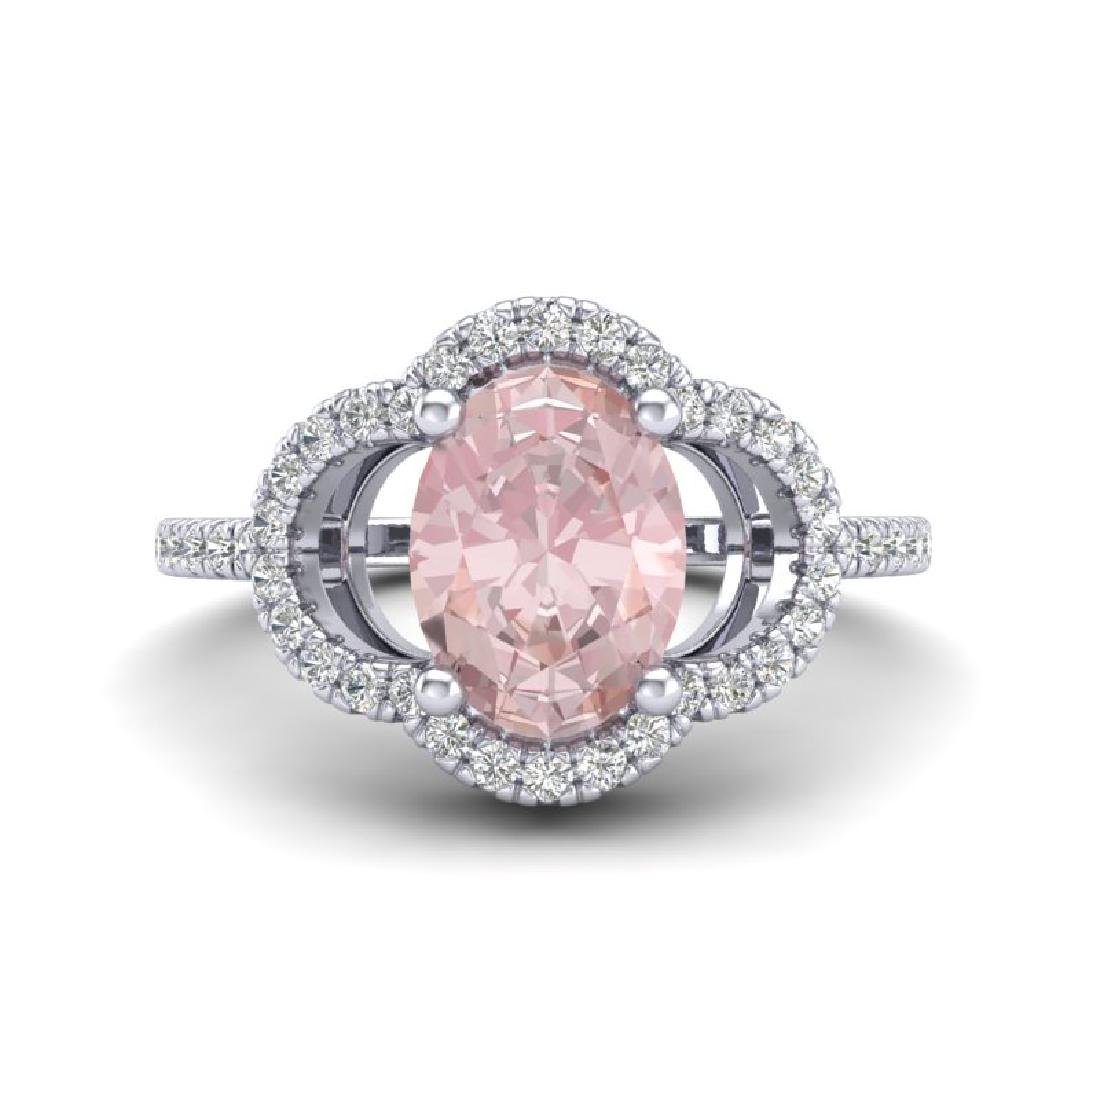 1.75 CTW Morganite & Micro Pave VS/SI Diamond Ring 10K